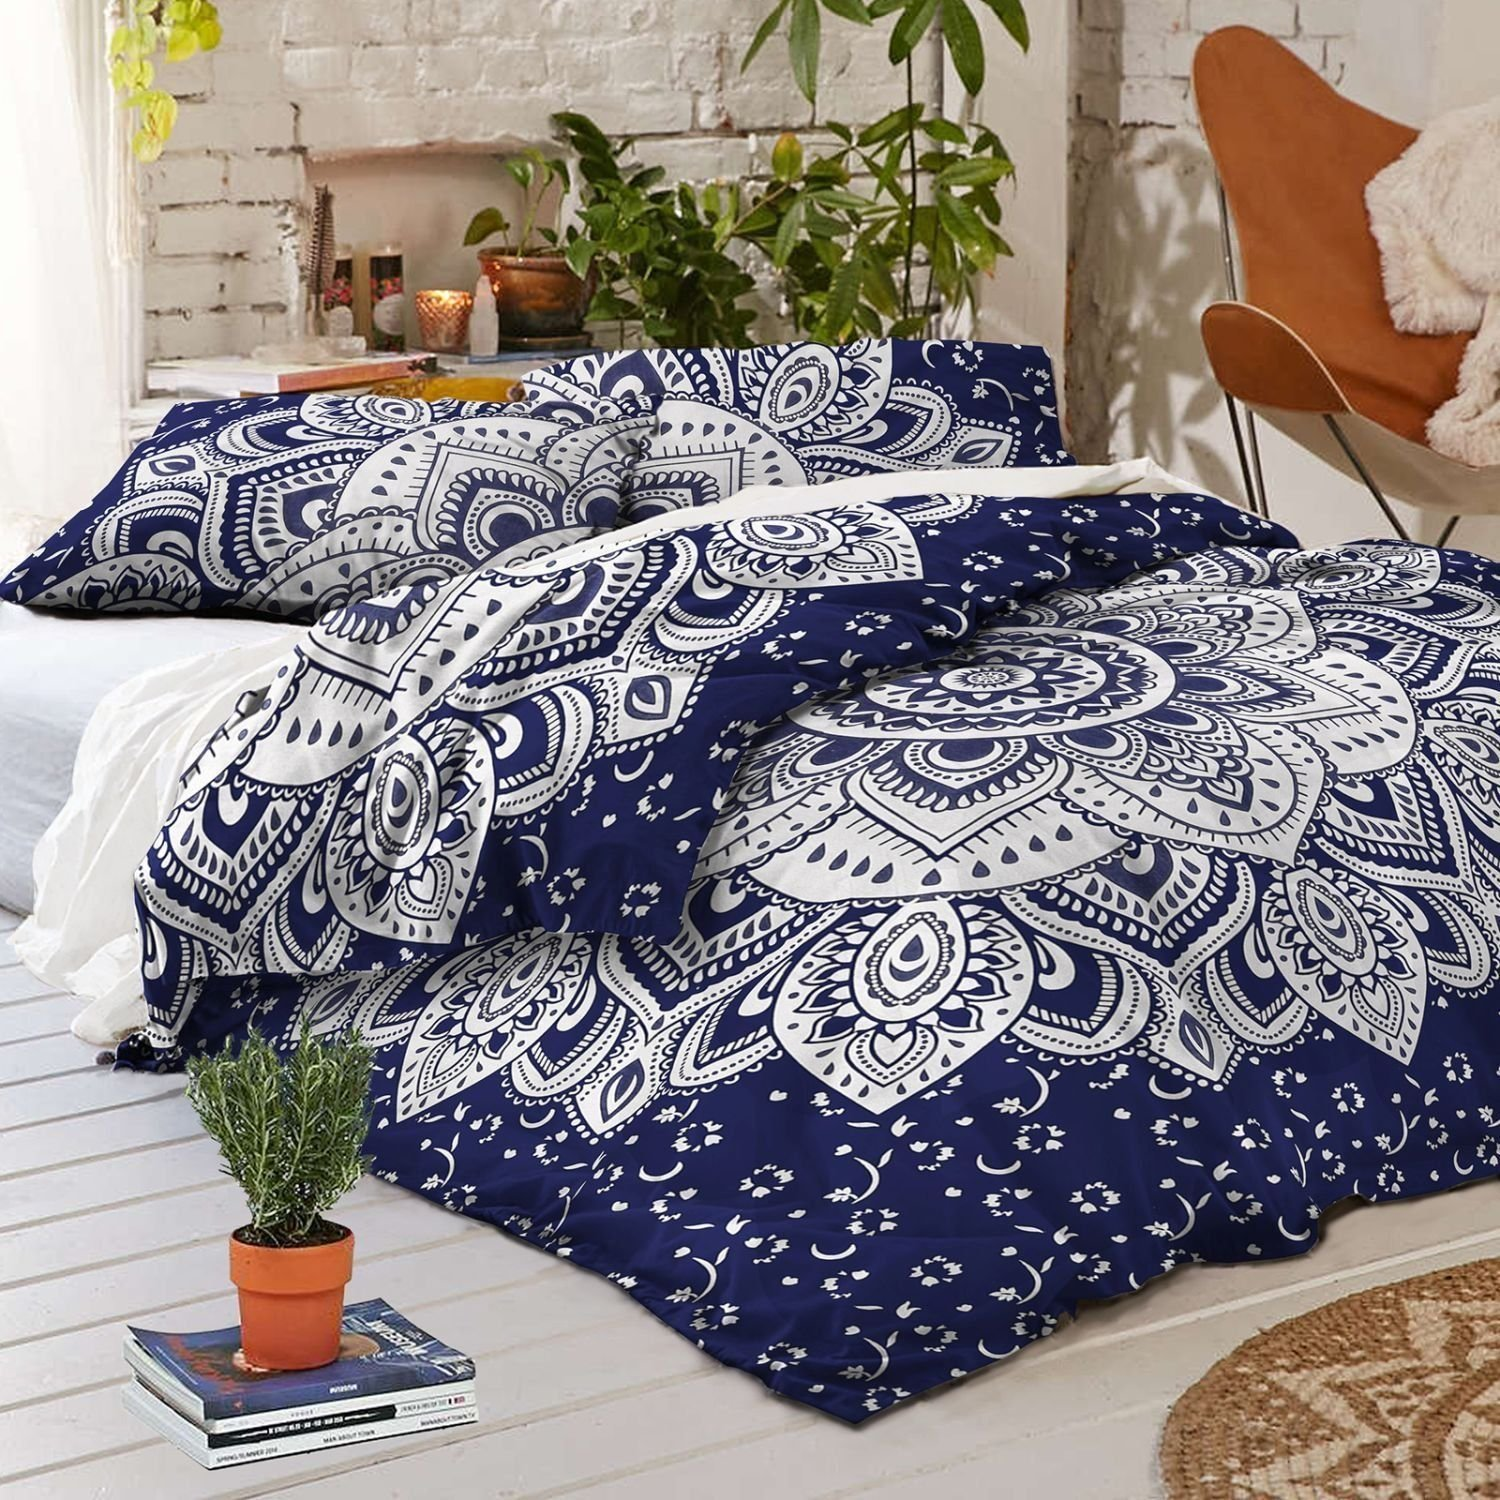 Psychedelic Celestial Sun Moon Duvet Cover Set Indian Sun Hippie Hippy Bedding Set Tie Dye Comforter Cover (Blue Lotos Ombre) Vedant Designs VDC0001